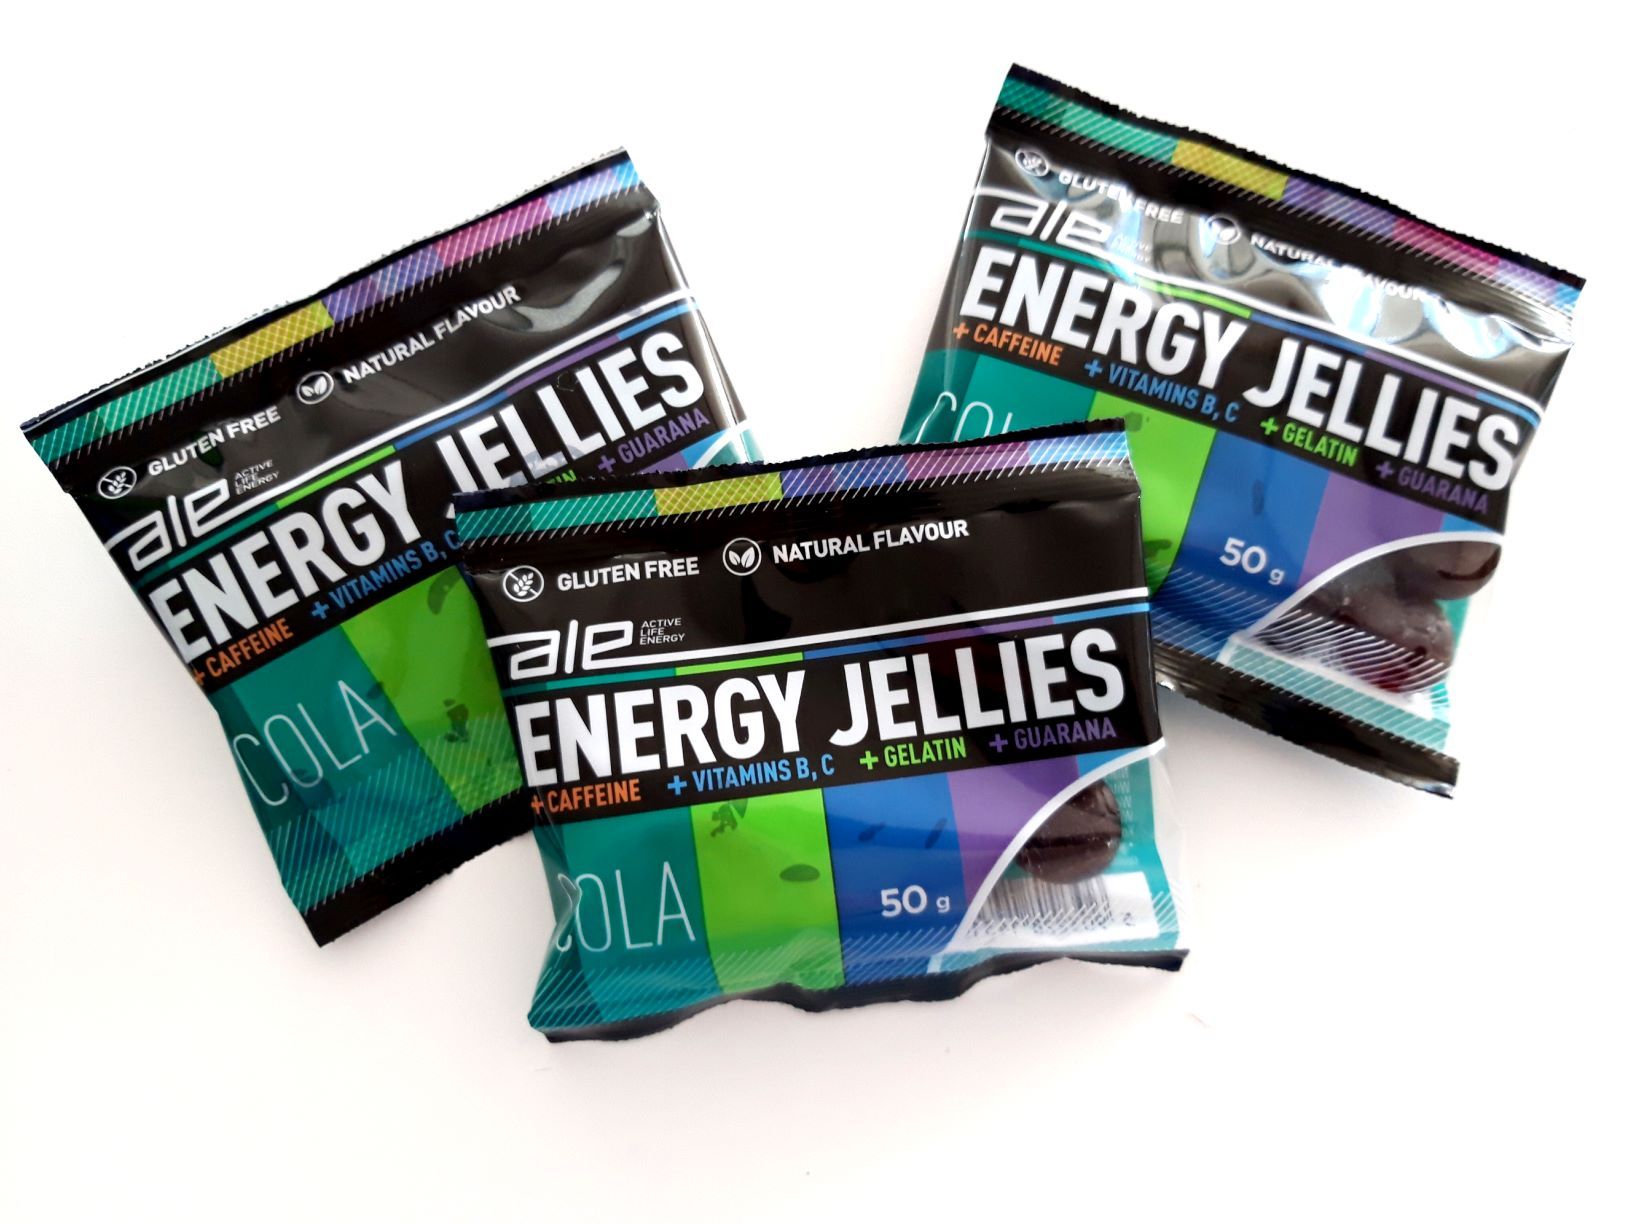 ALE ENERGY JELLIES